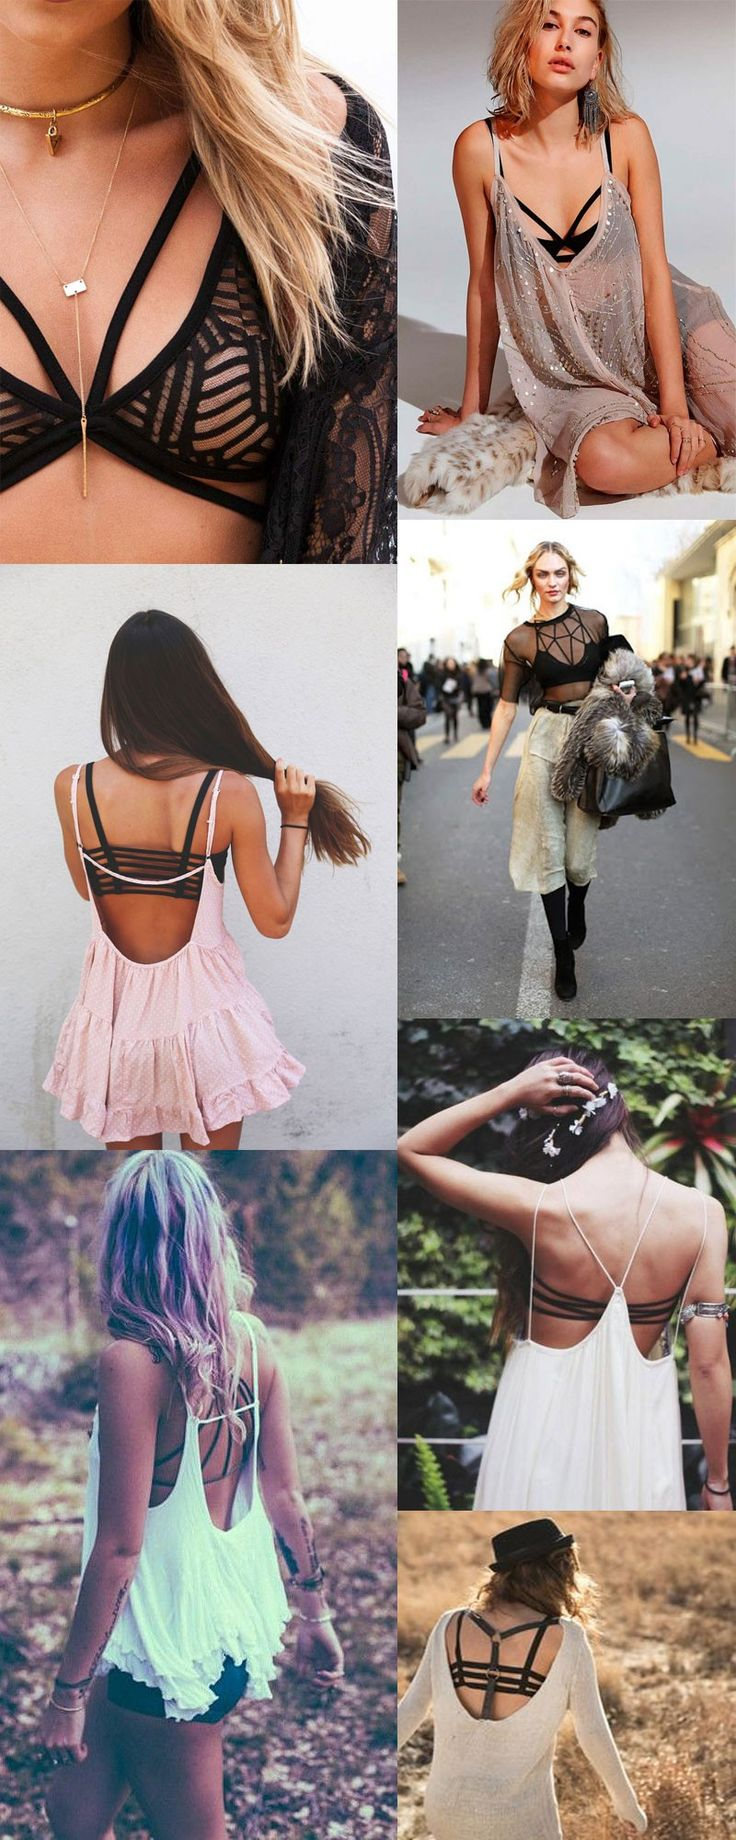 Strappy-Bras for backless dresses/shirts